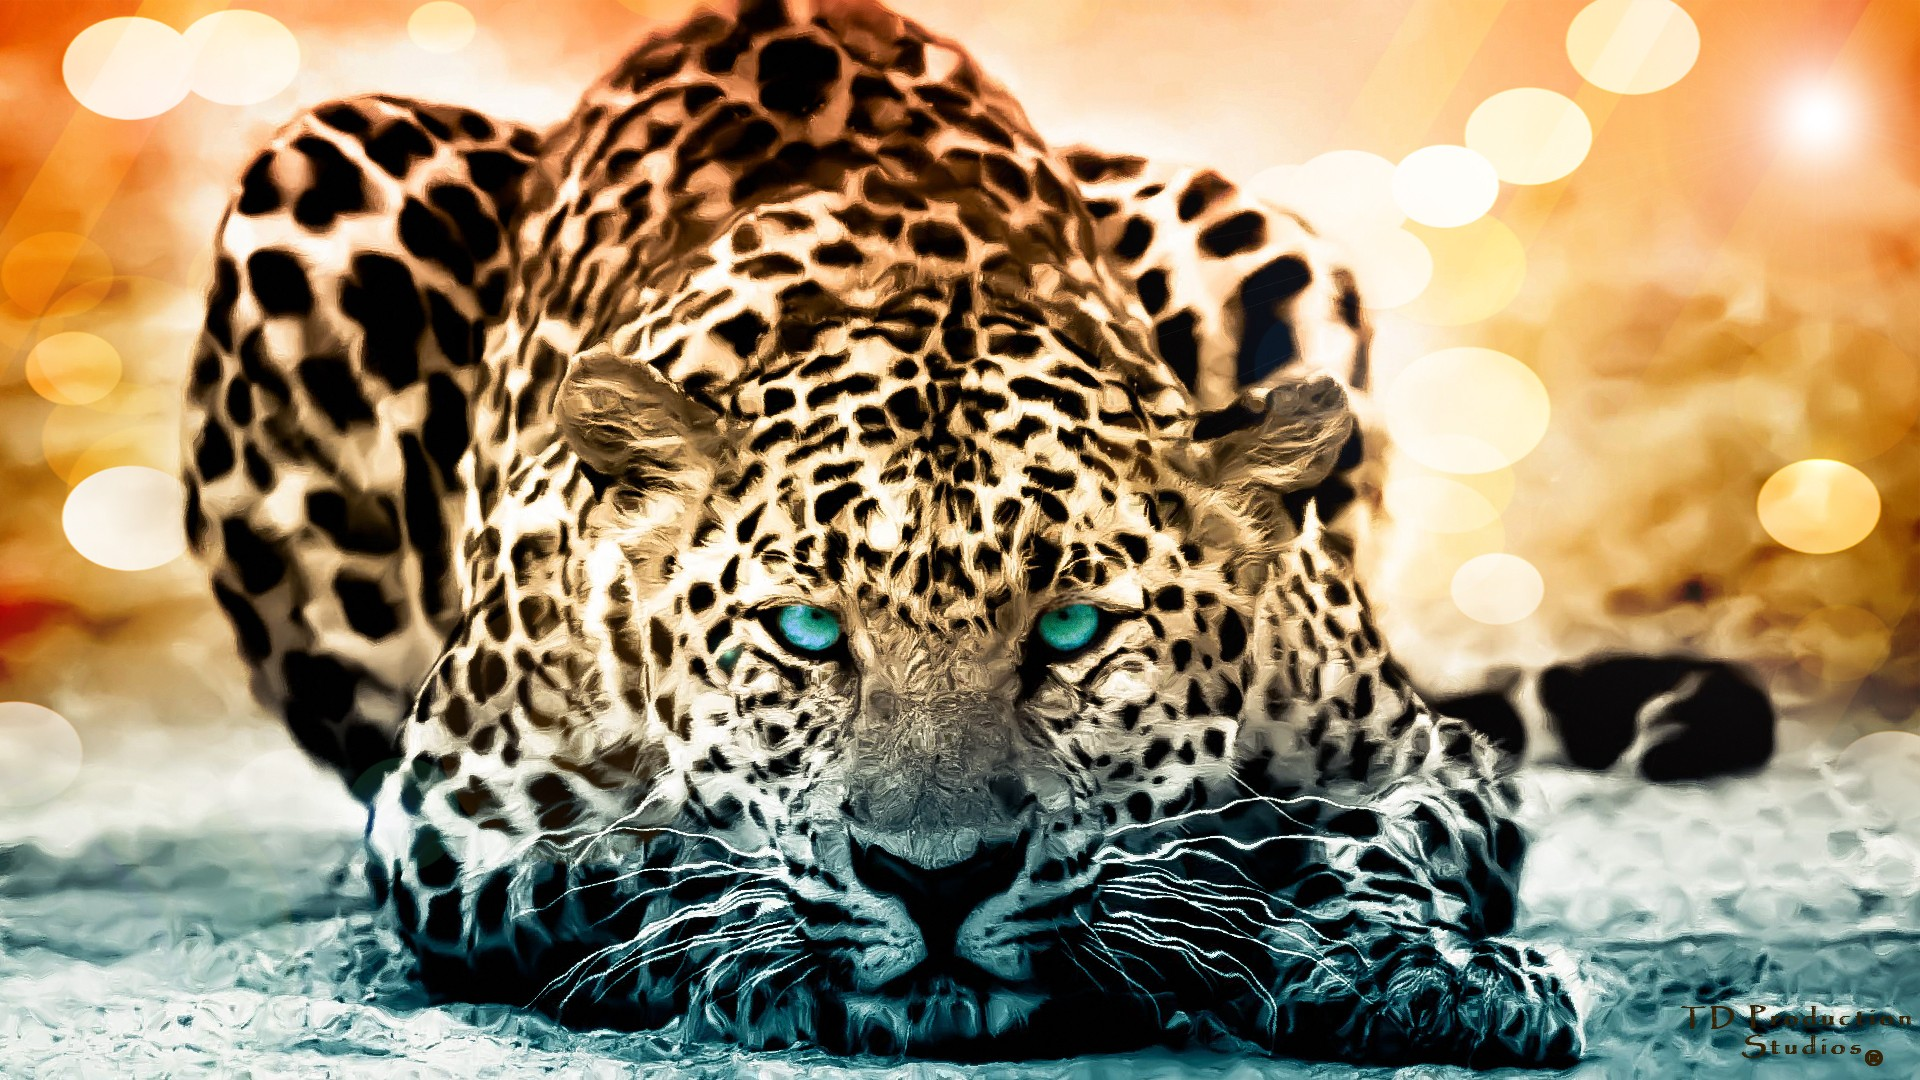 Jaguar Blue Eyes 3694.72 Kb